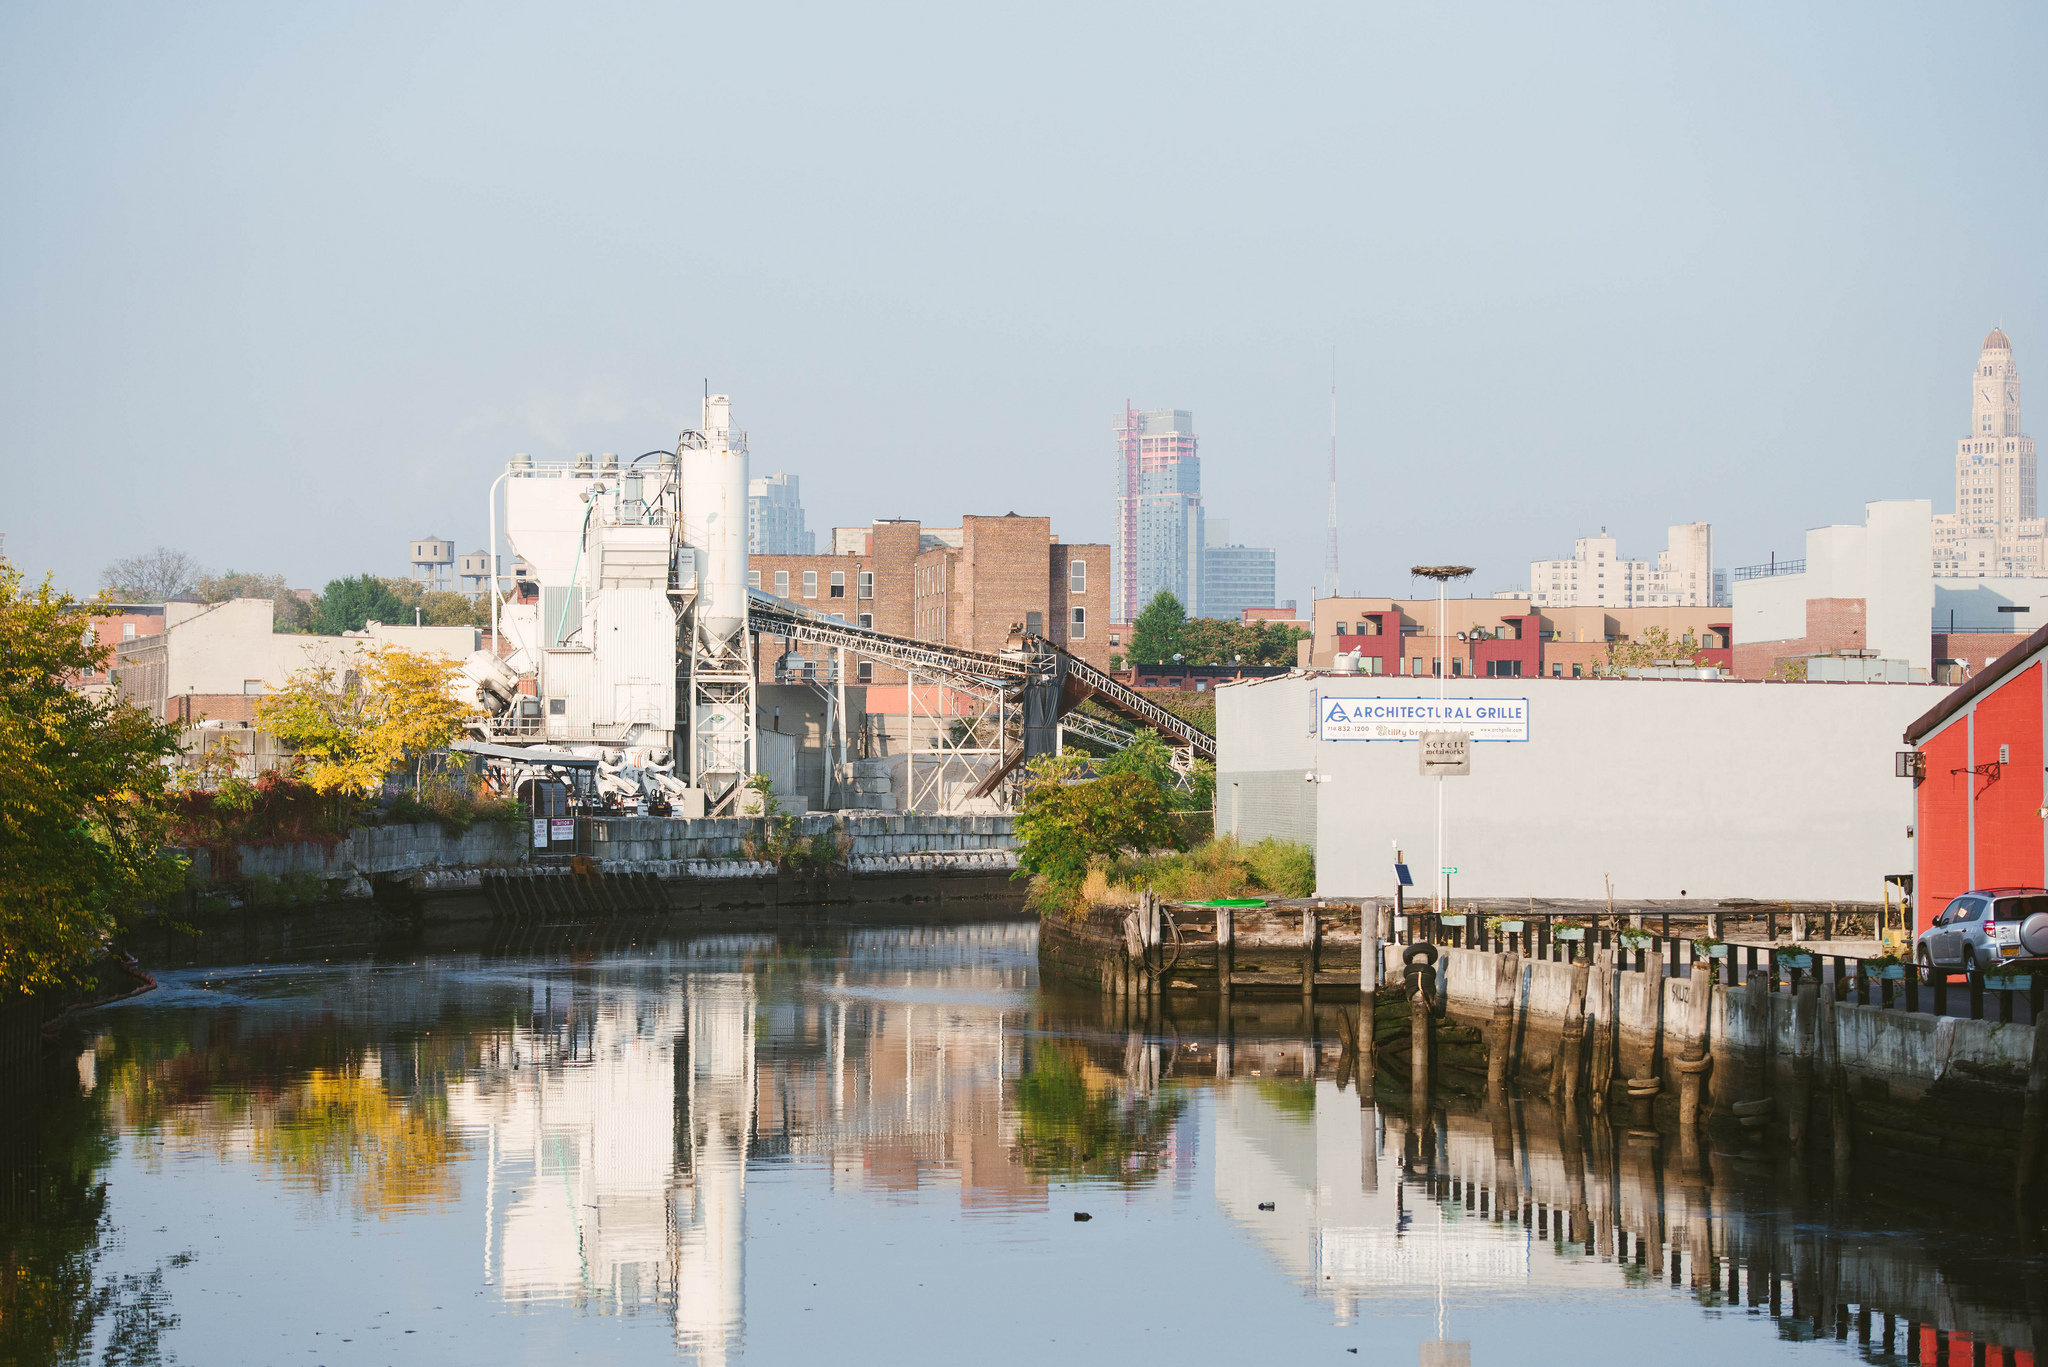 The beautiful, clean, sparkling Gowanus Canal